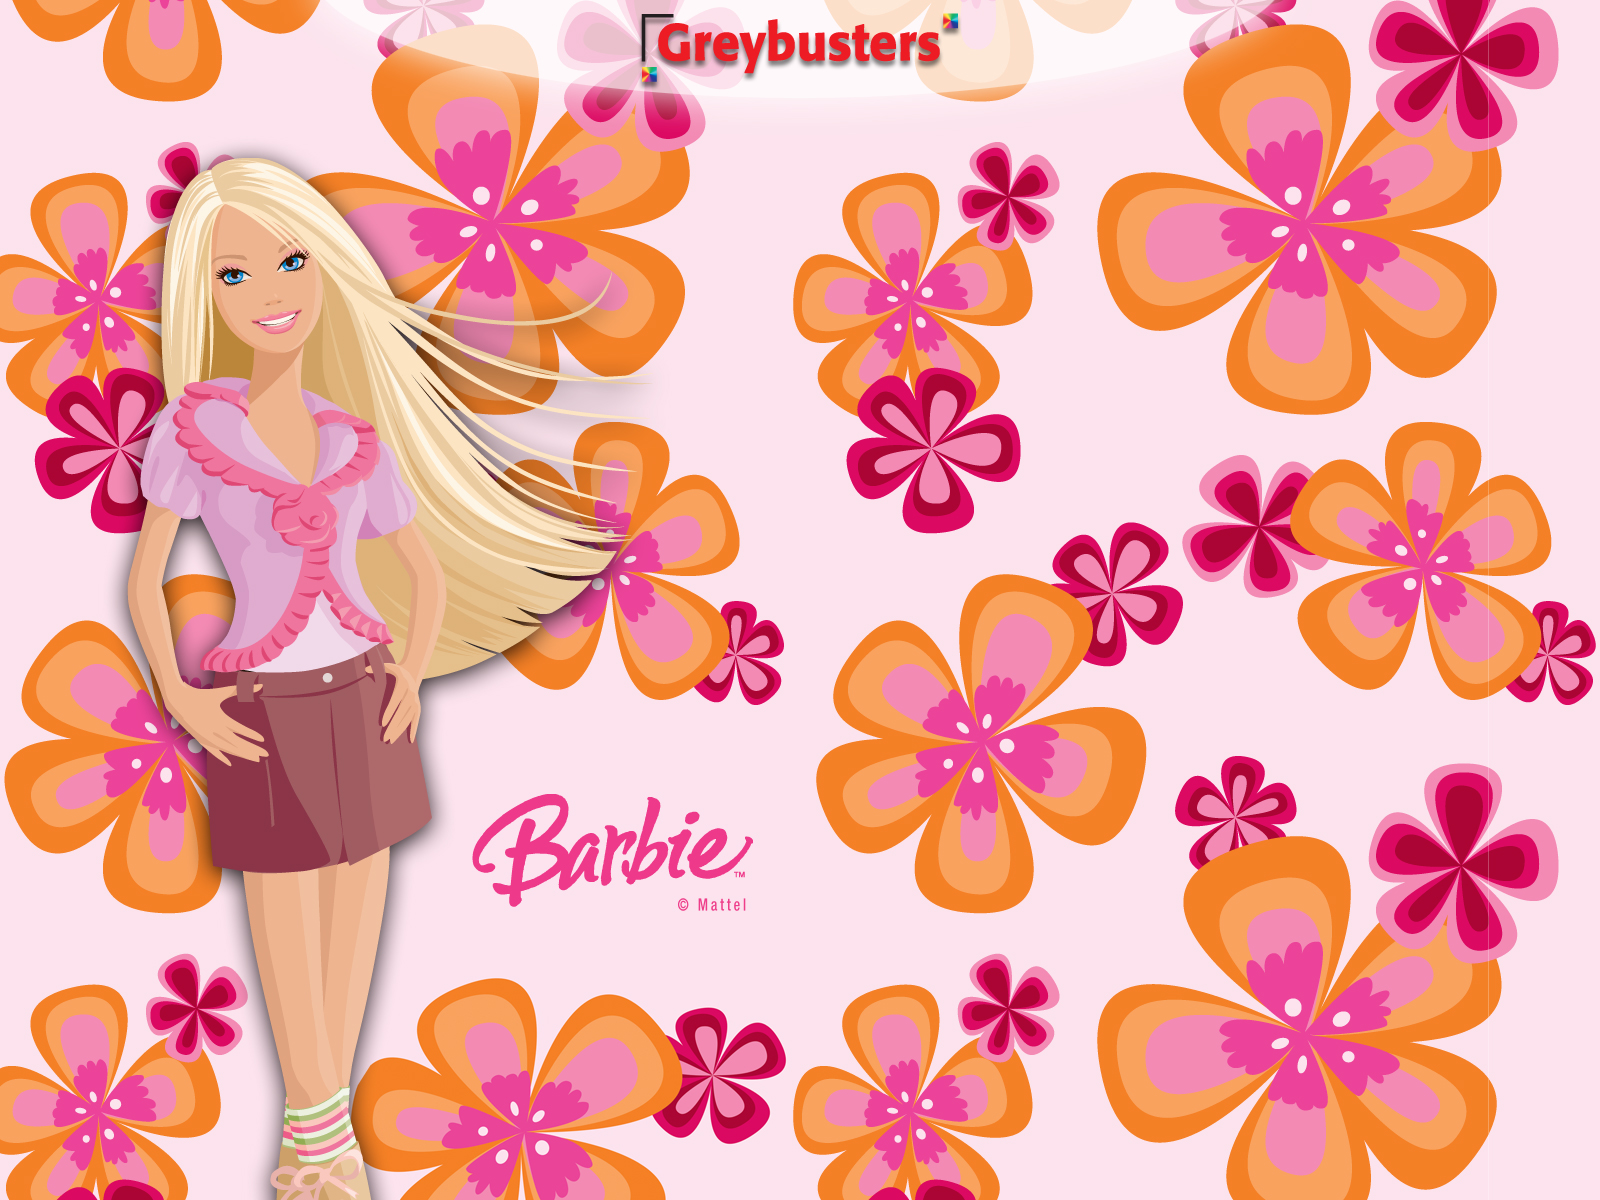 Barbie pink images barbie barbie pink images barbie pink images voltagebd